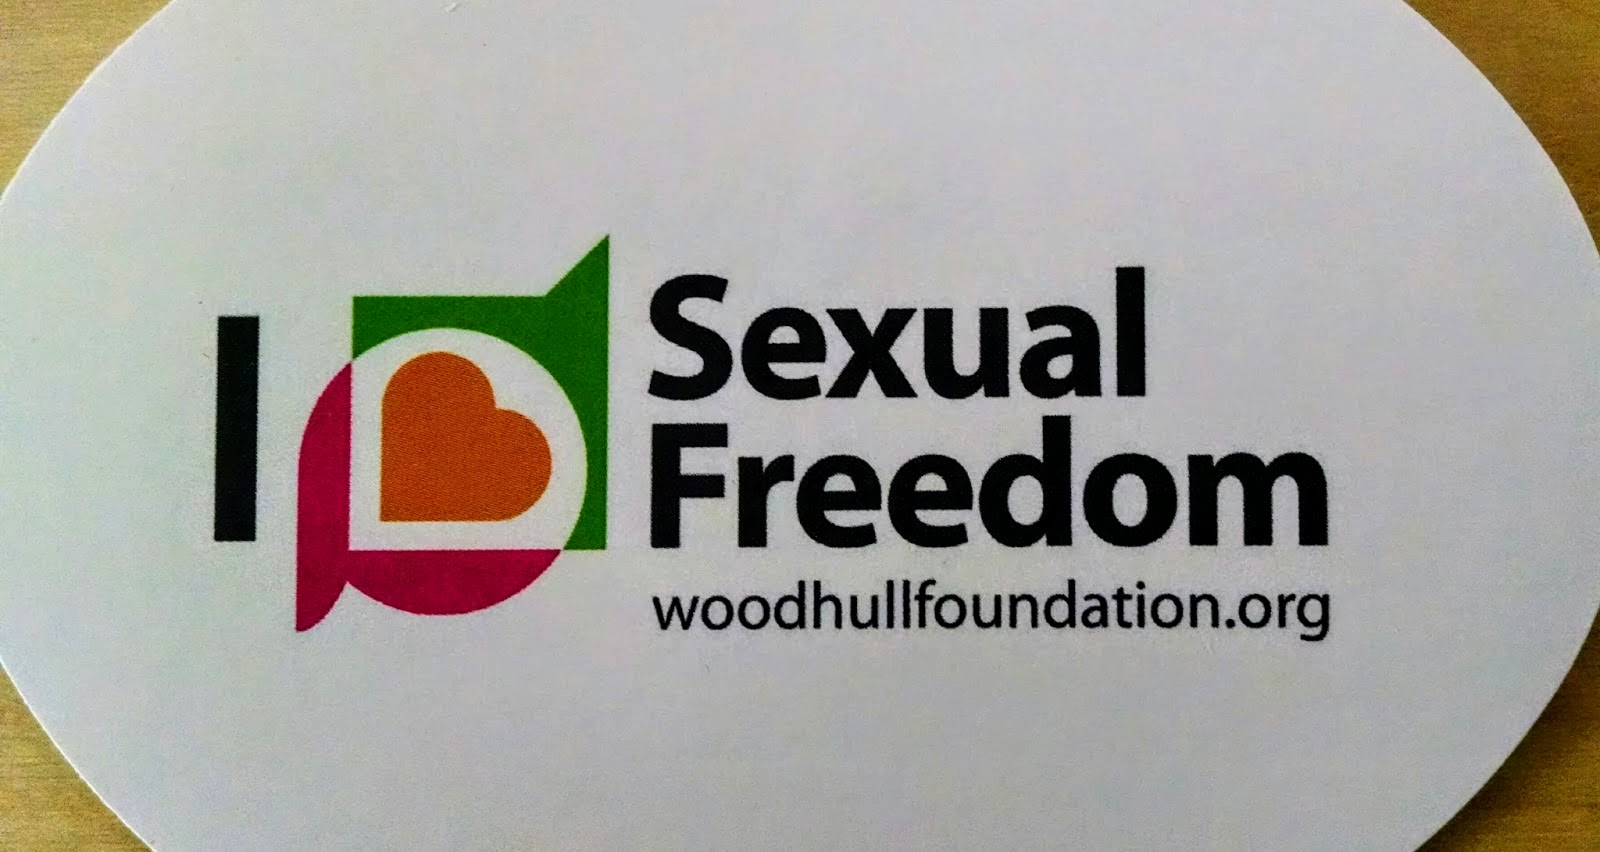 I Love Sexual Freedom Woodhull Foundation